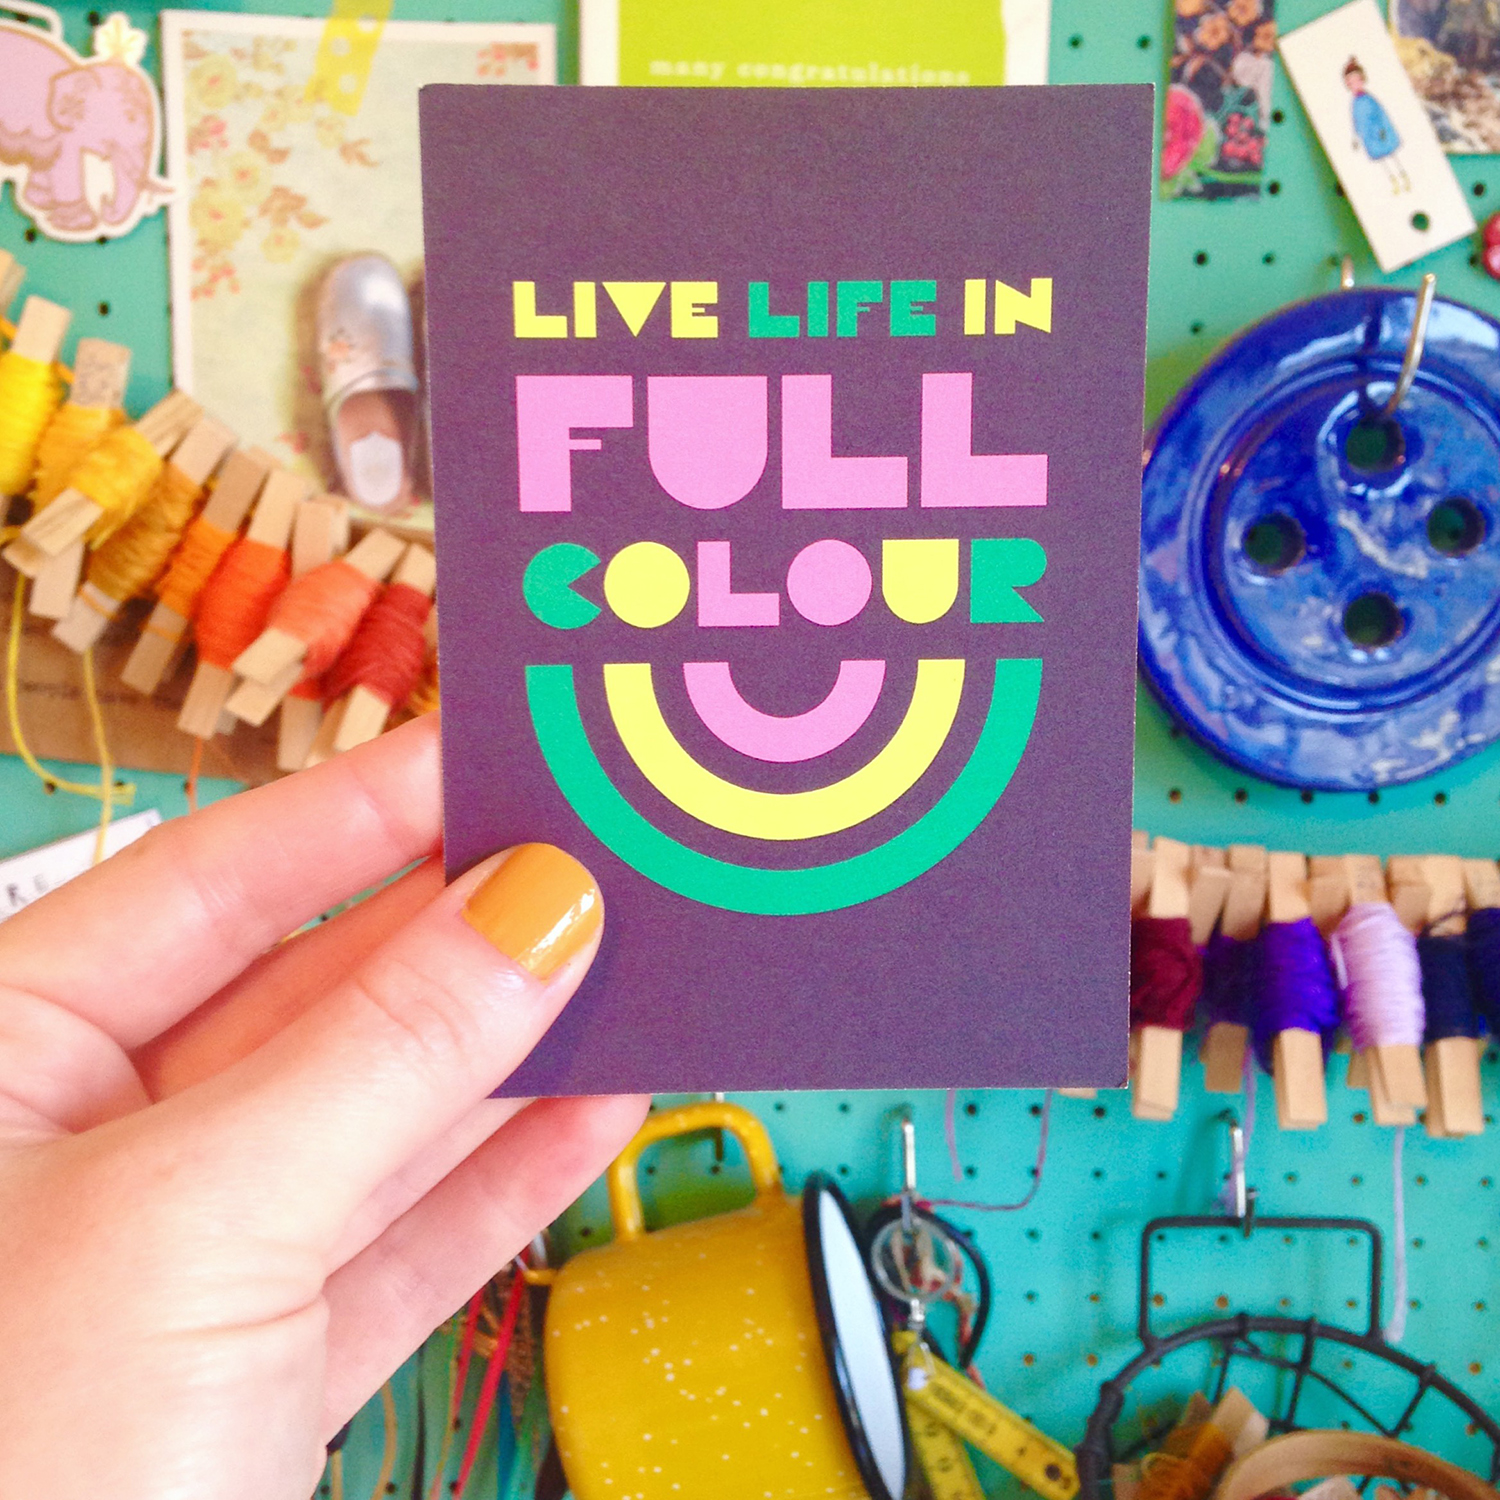 live life in full colour judy andrews